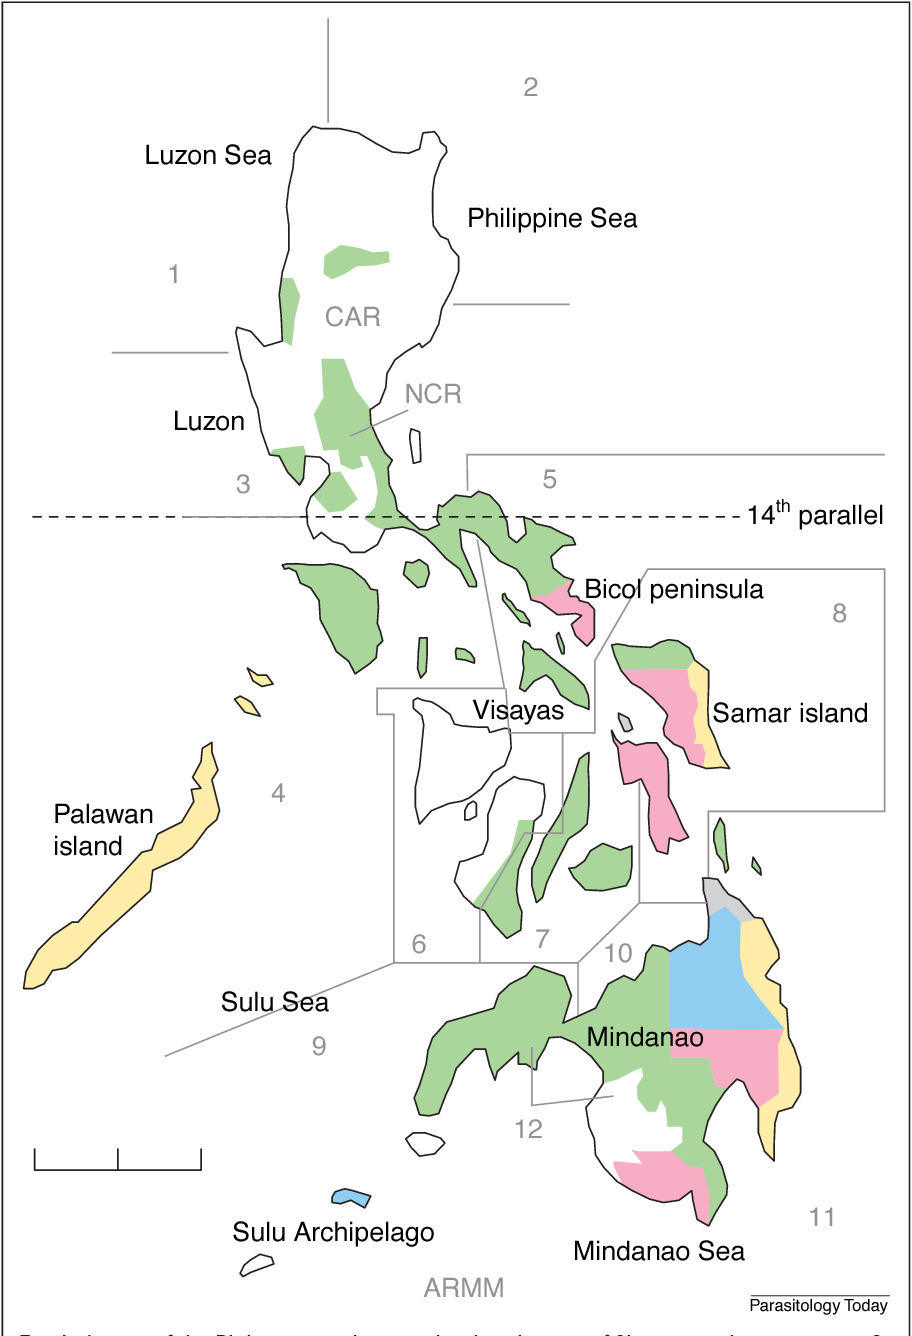 Fig. 1. A map of the Philippines indicating the distribution of filariasis and regions specific for Brugia malayi (blue), Wuchereria bancrofti (pink), both (yellow) or undefined (green) species. Numbers refer to public health Regions defined in Table 1. Scale bar 5 200 km. Abbreviations: ARMM, Autonomous Region of Muslim Mindanao; CAR, Cordillera administrative region; NCR, Metropolitan Manila.